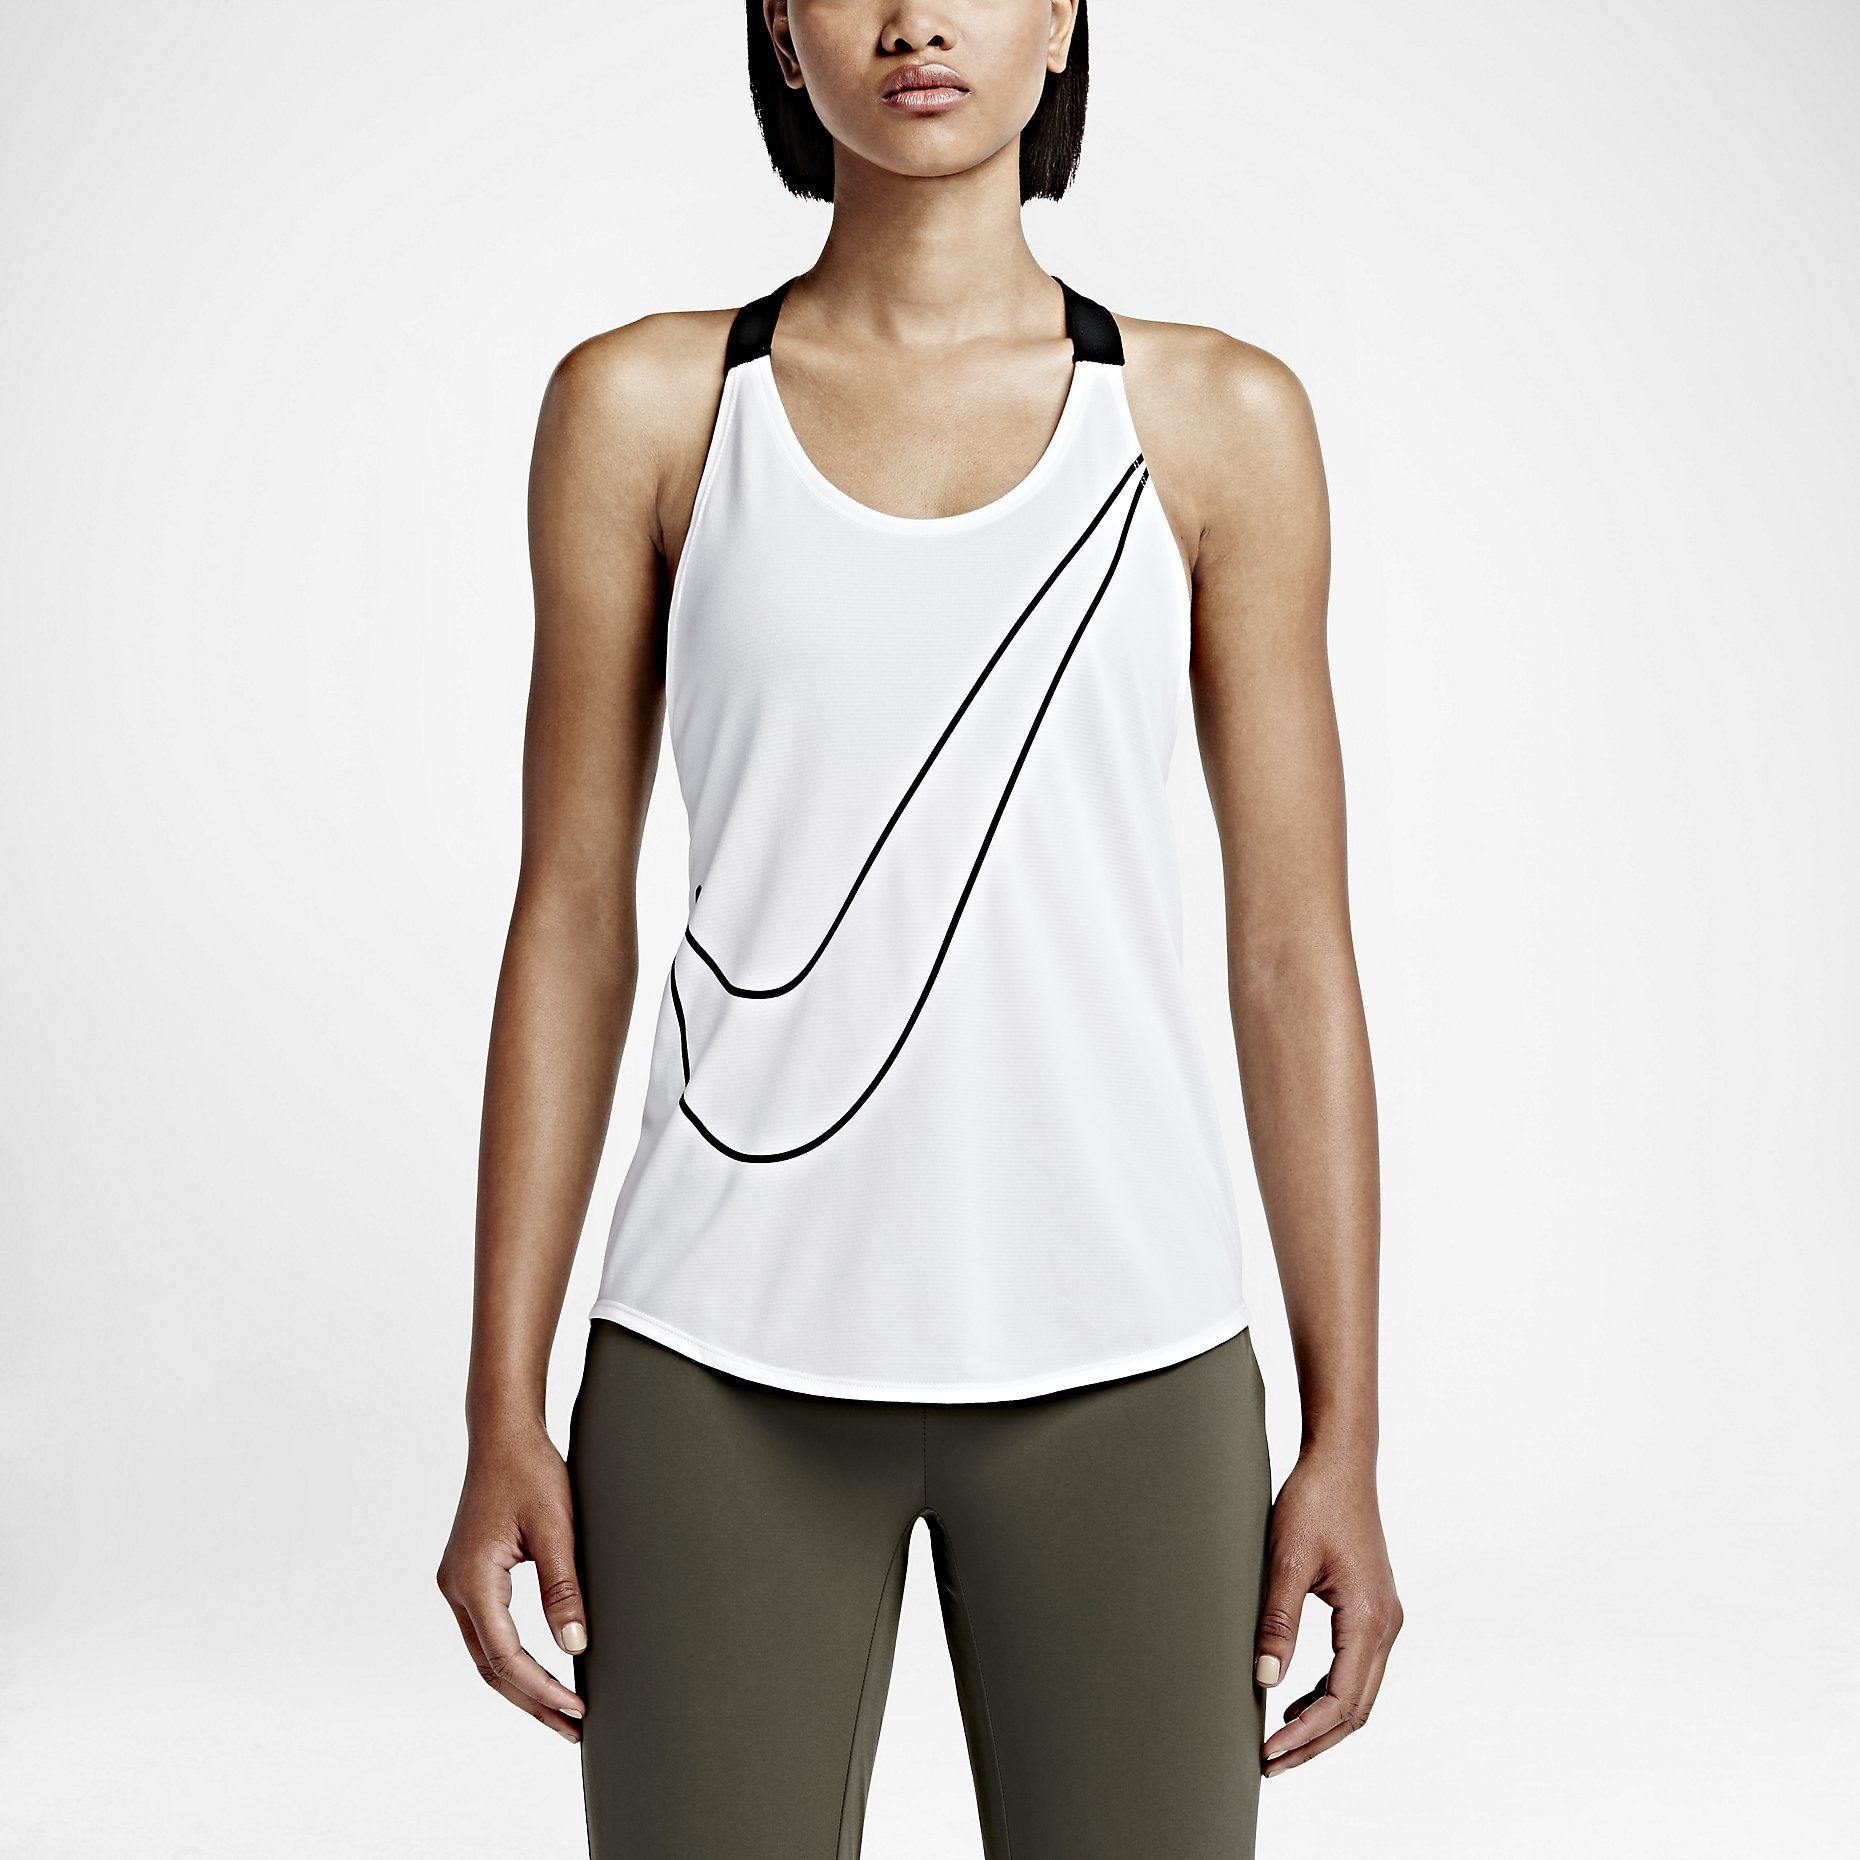 NWT Nike Elastika Tank Top New with tags! Flowy cut and large armholes  deliver maximum mobility during workout. Dri-FIT fabric helps keep you  comfortably ...